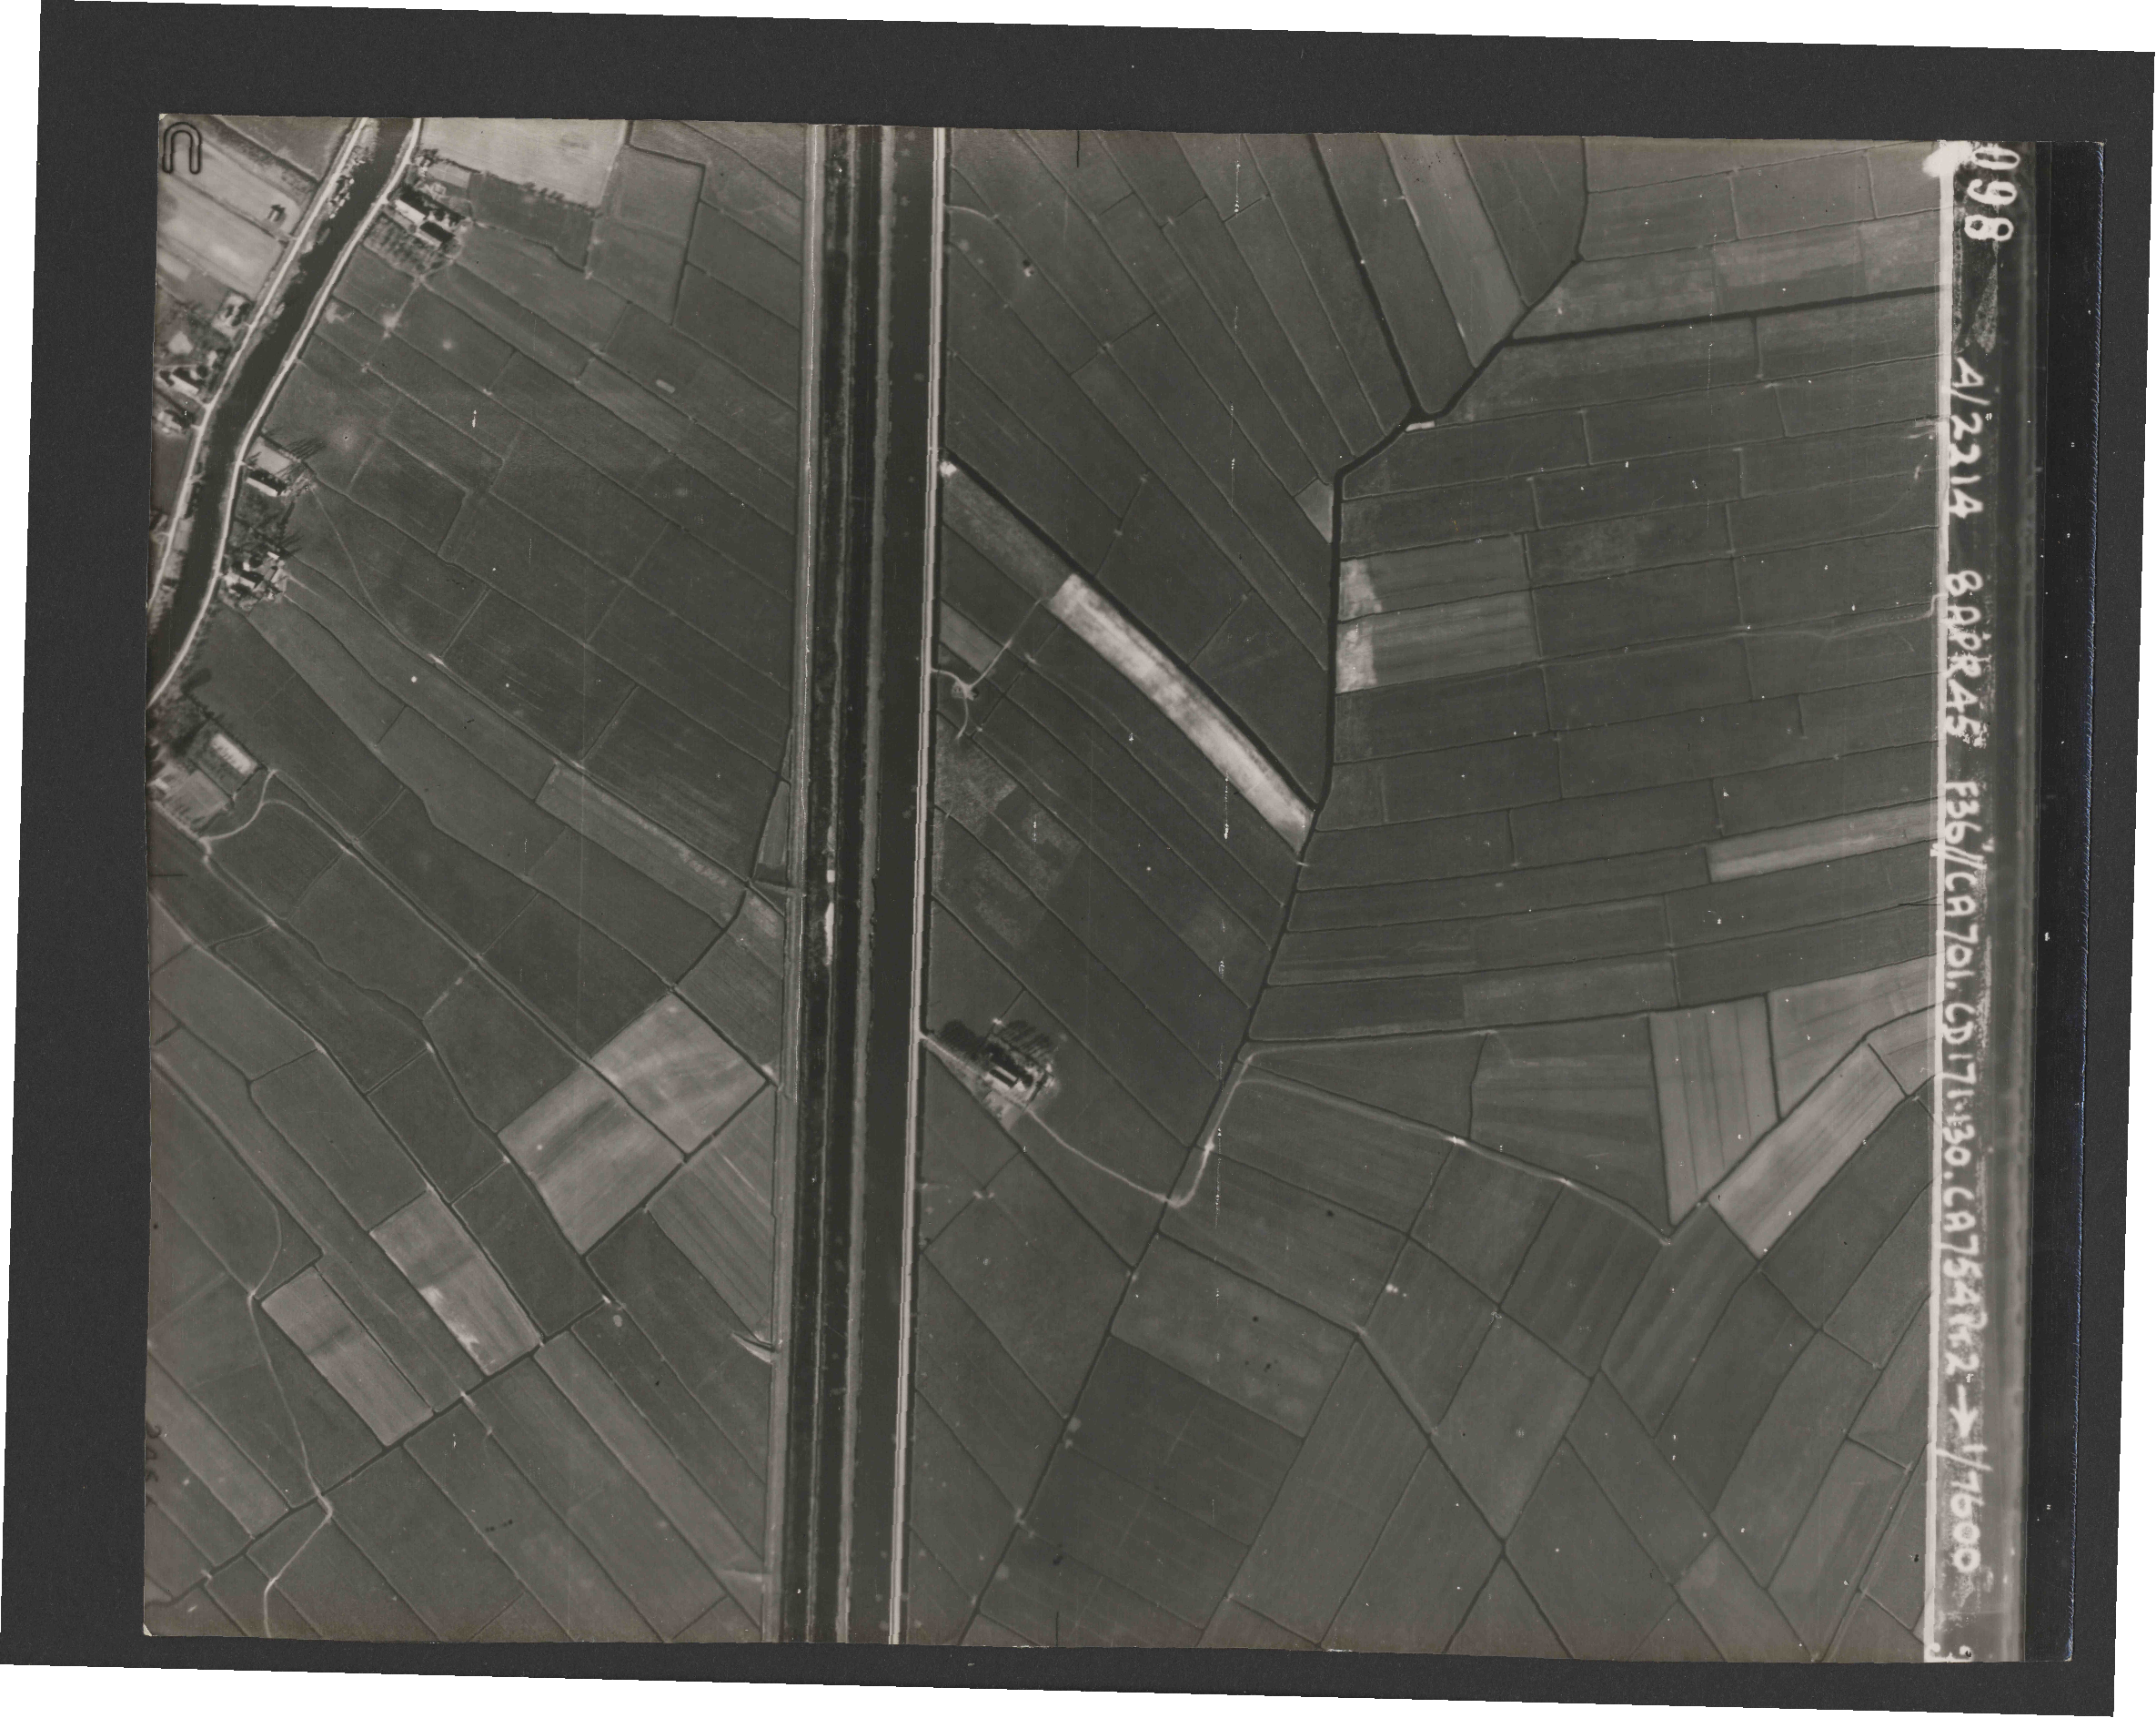 Collection RAF aerial photos 1940-1945 - flight 123, run 04, photo 3098